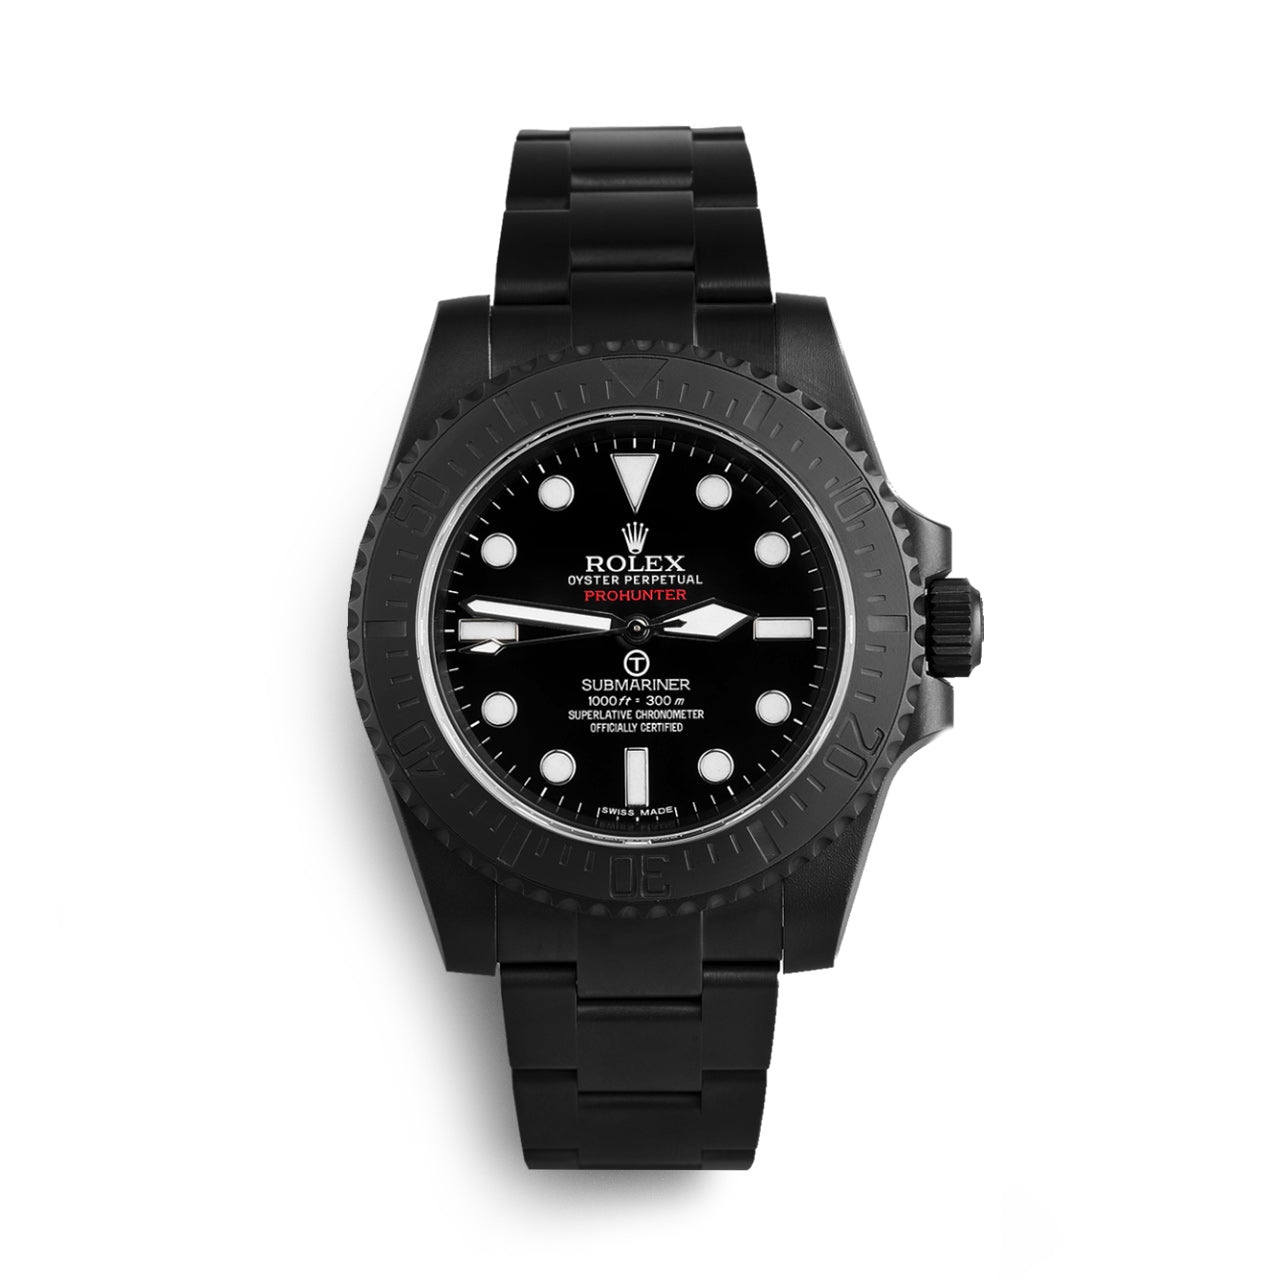 Pro Hunter Submariner Military Stealth Watch